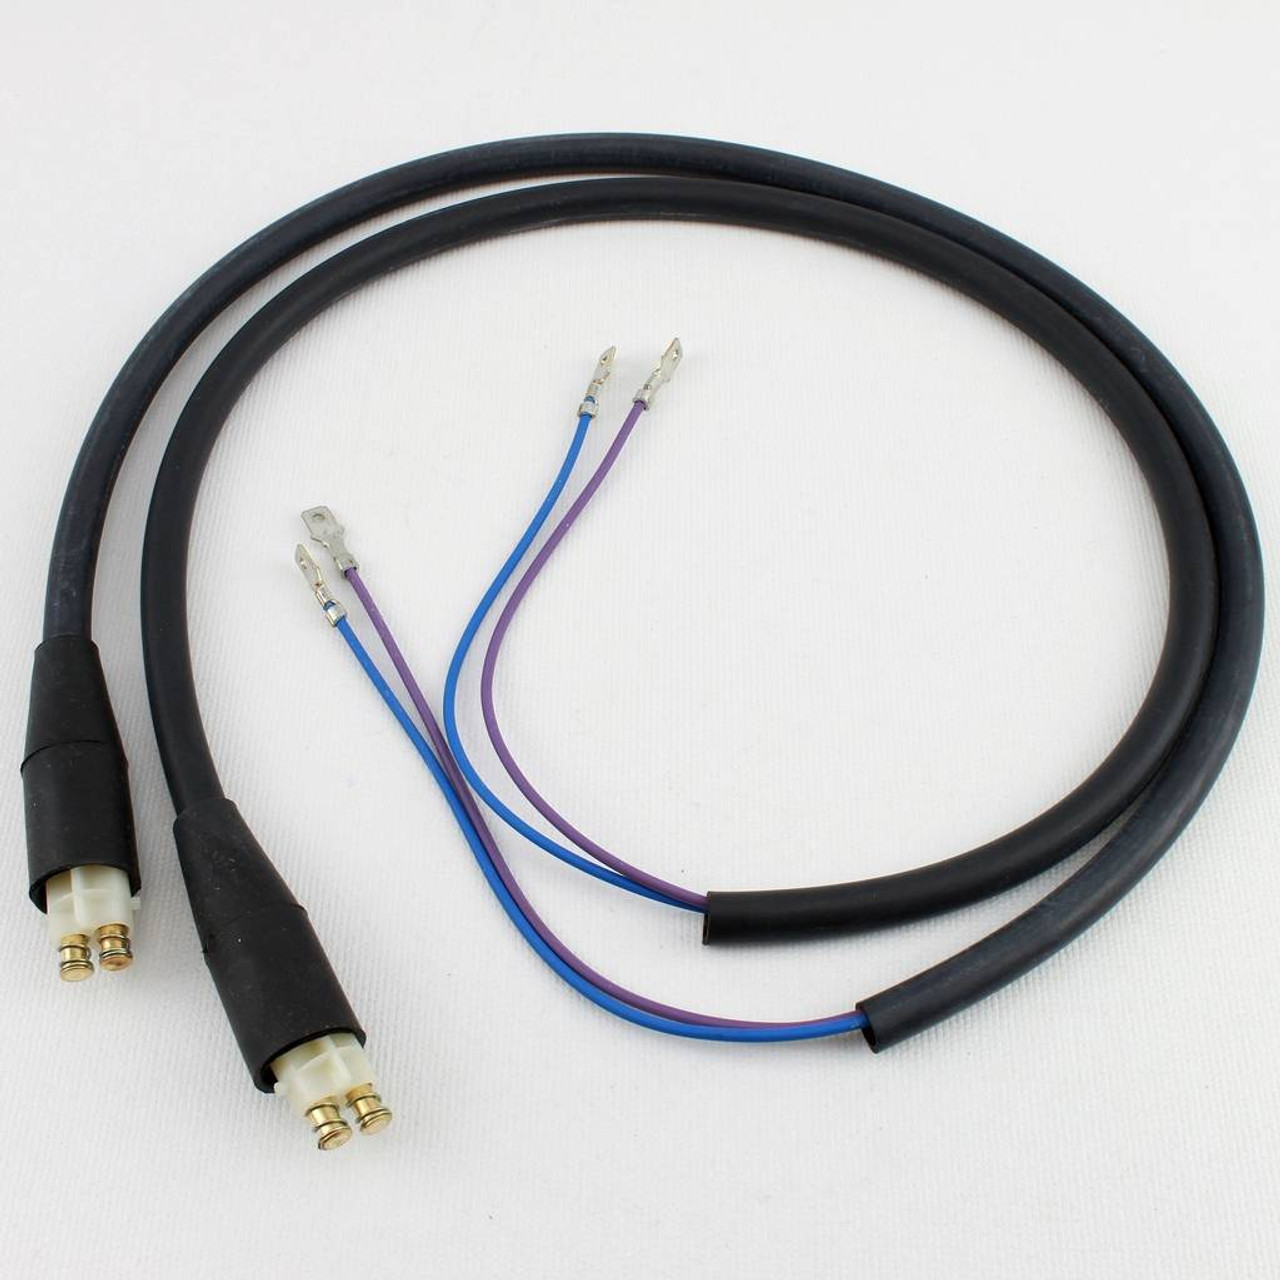 Outstanding 55 56 Chevy Parklight Turn Signal Wiring Harness Pigtails Rubber Wiring Digital Resources Funapmognl